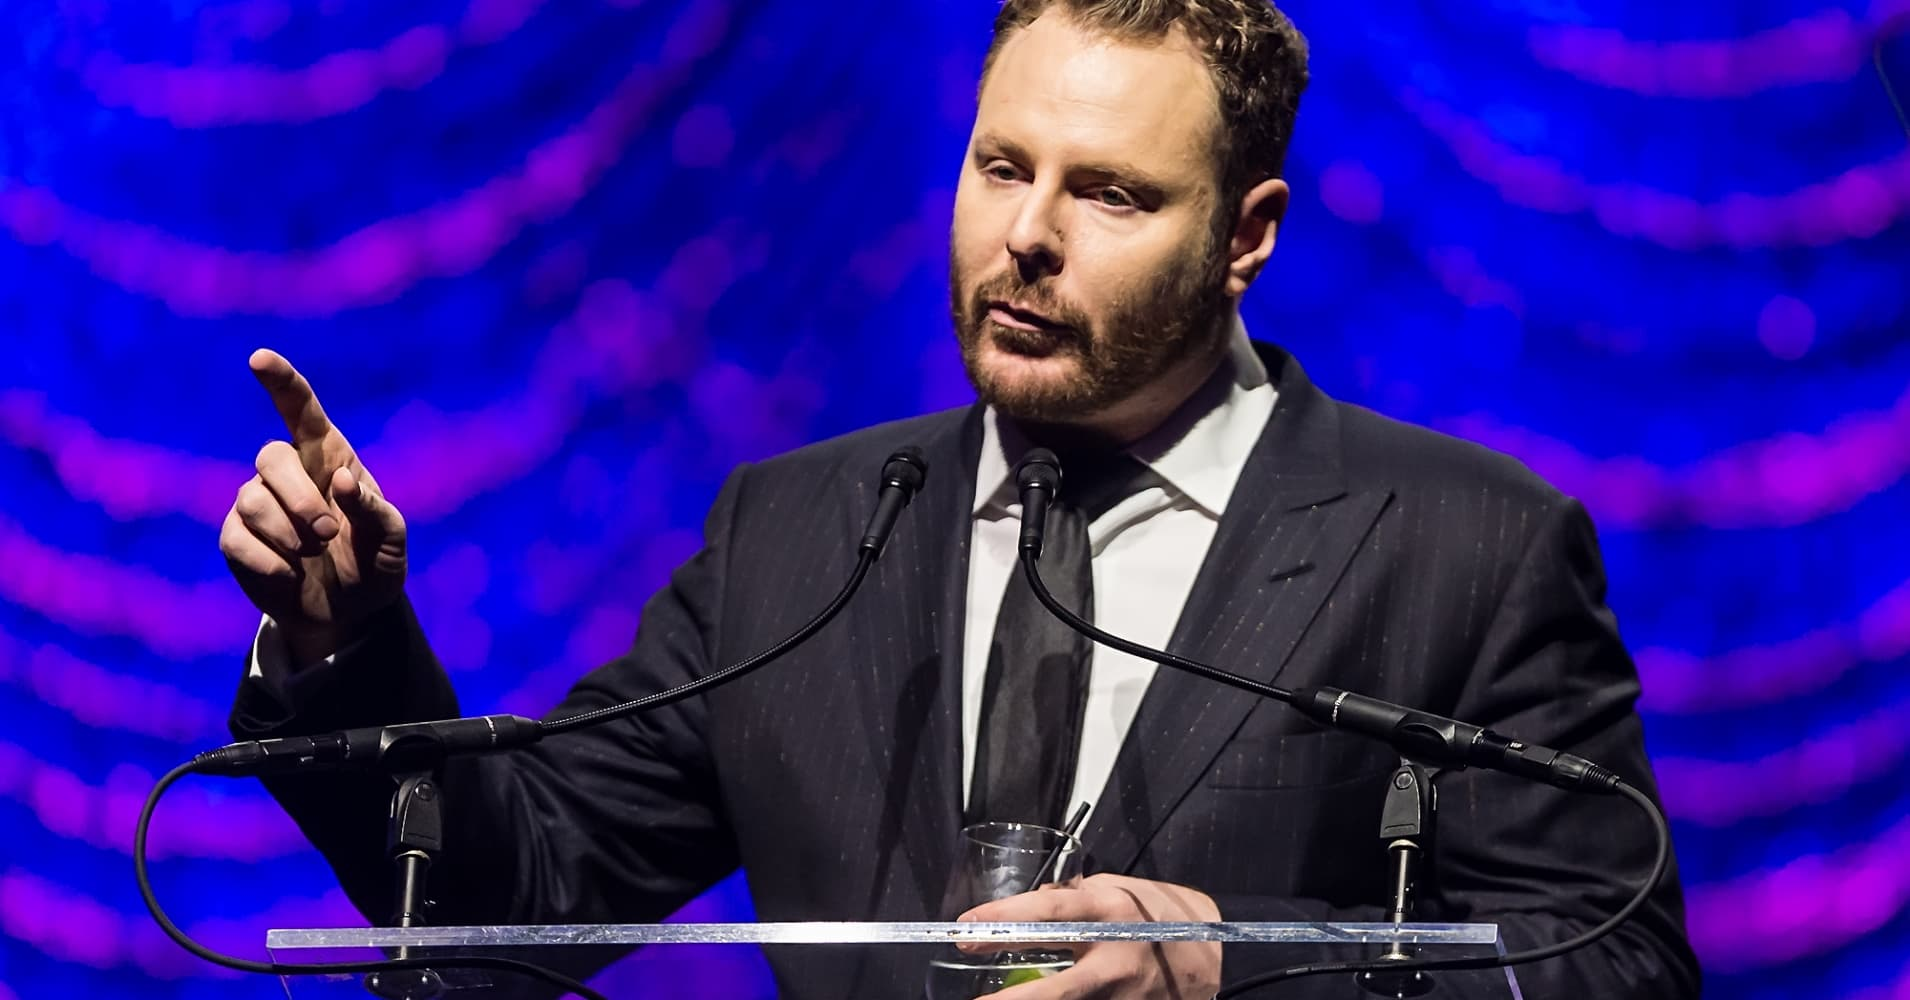 Facebook co-founder Sean Parker on Elon Musk AI warnings